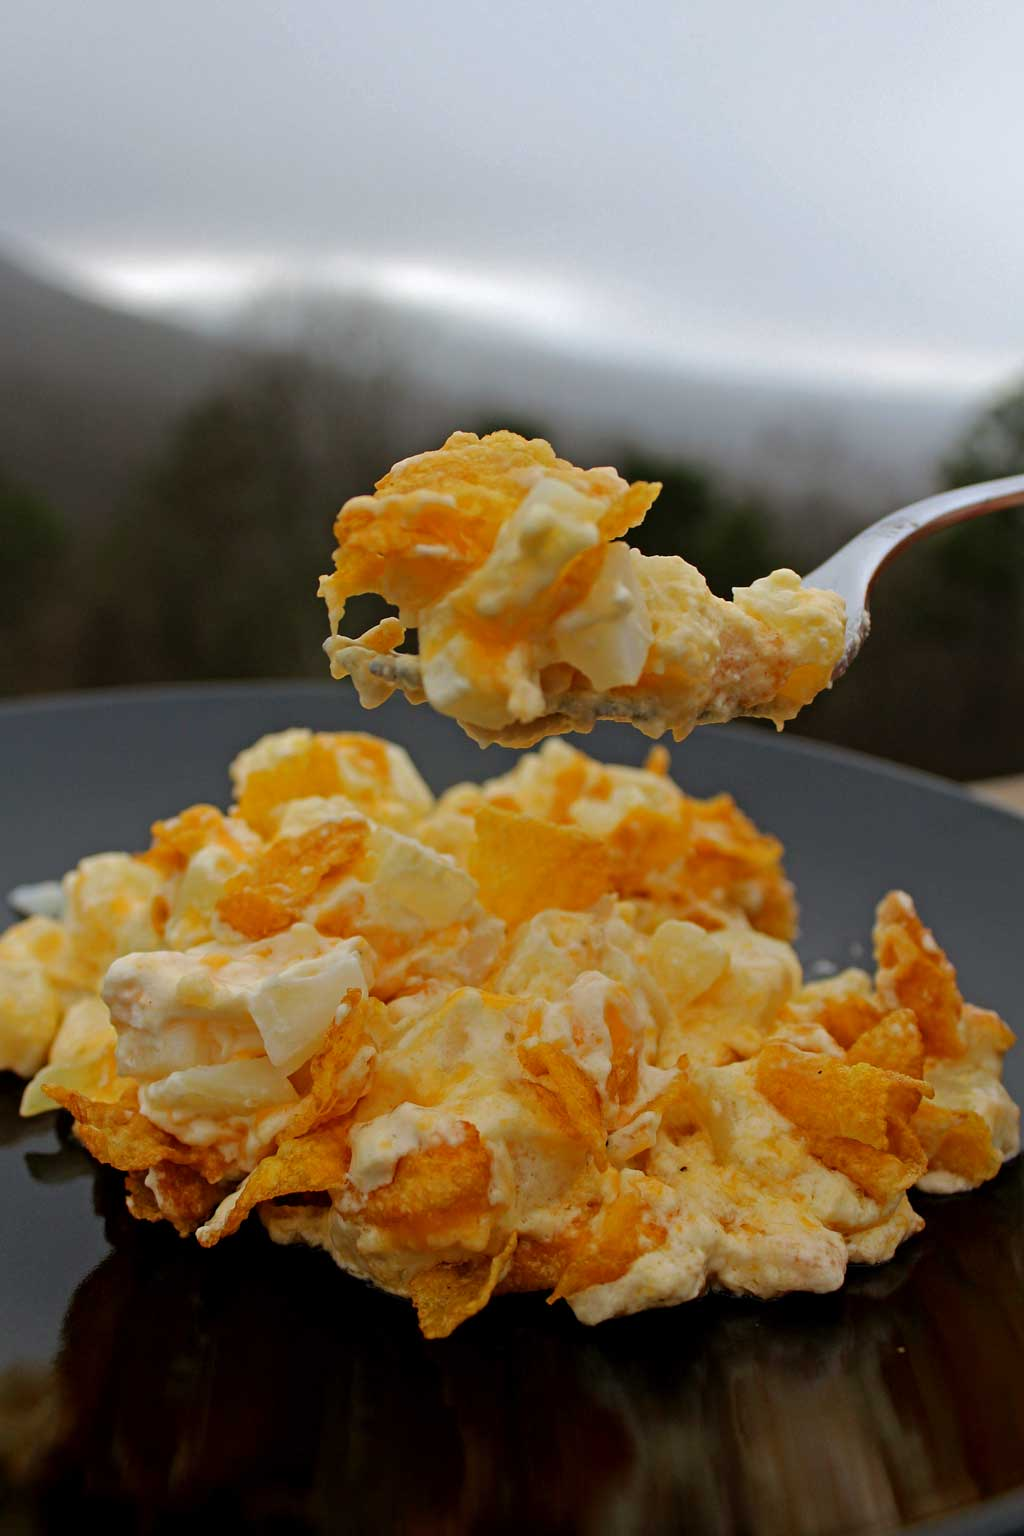 Hash Brown Potato Casserole: hash brown potatoes and onions, mixed in a creamy sour cream and cheese mixture, baked and topped with buttery corn flakes.